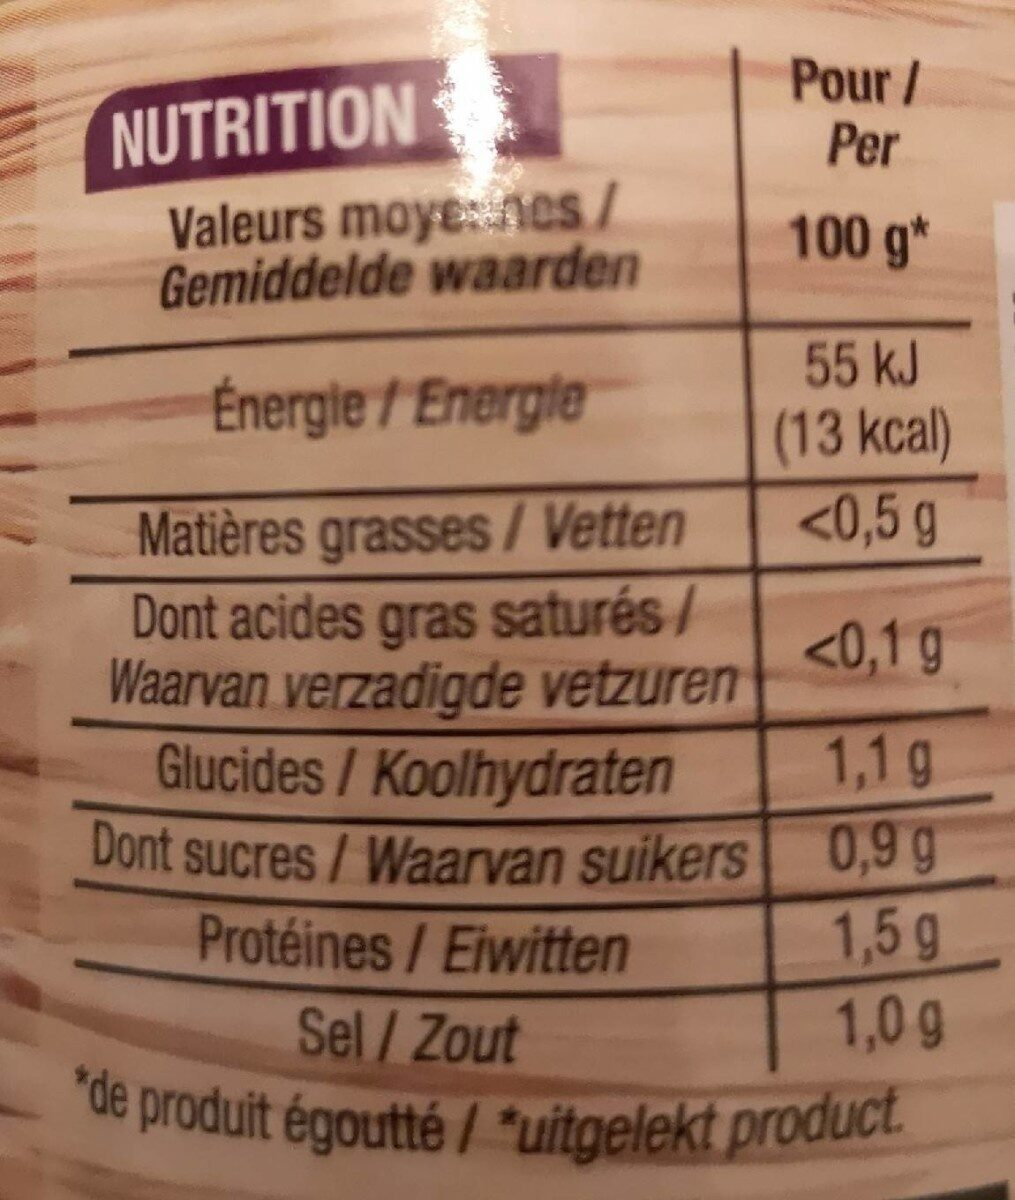 Asperges blanches grosses, 320g - Nutrition facts - fr